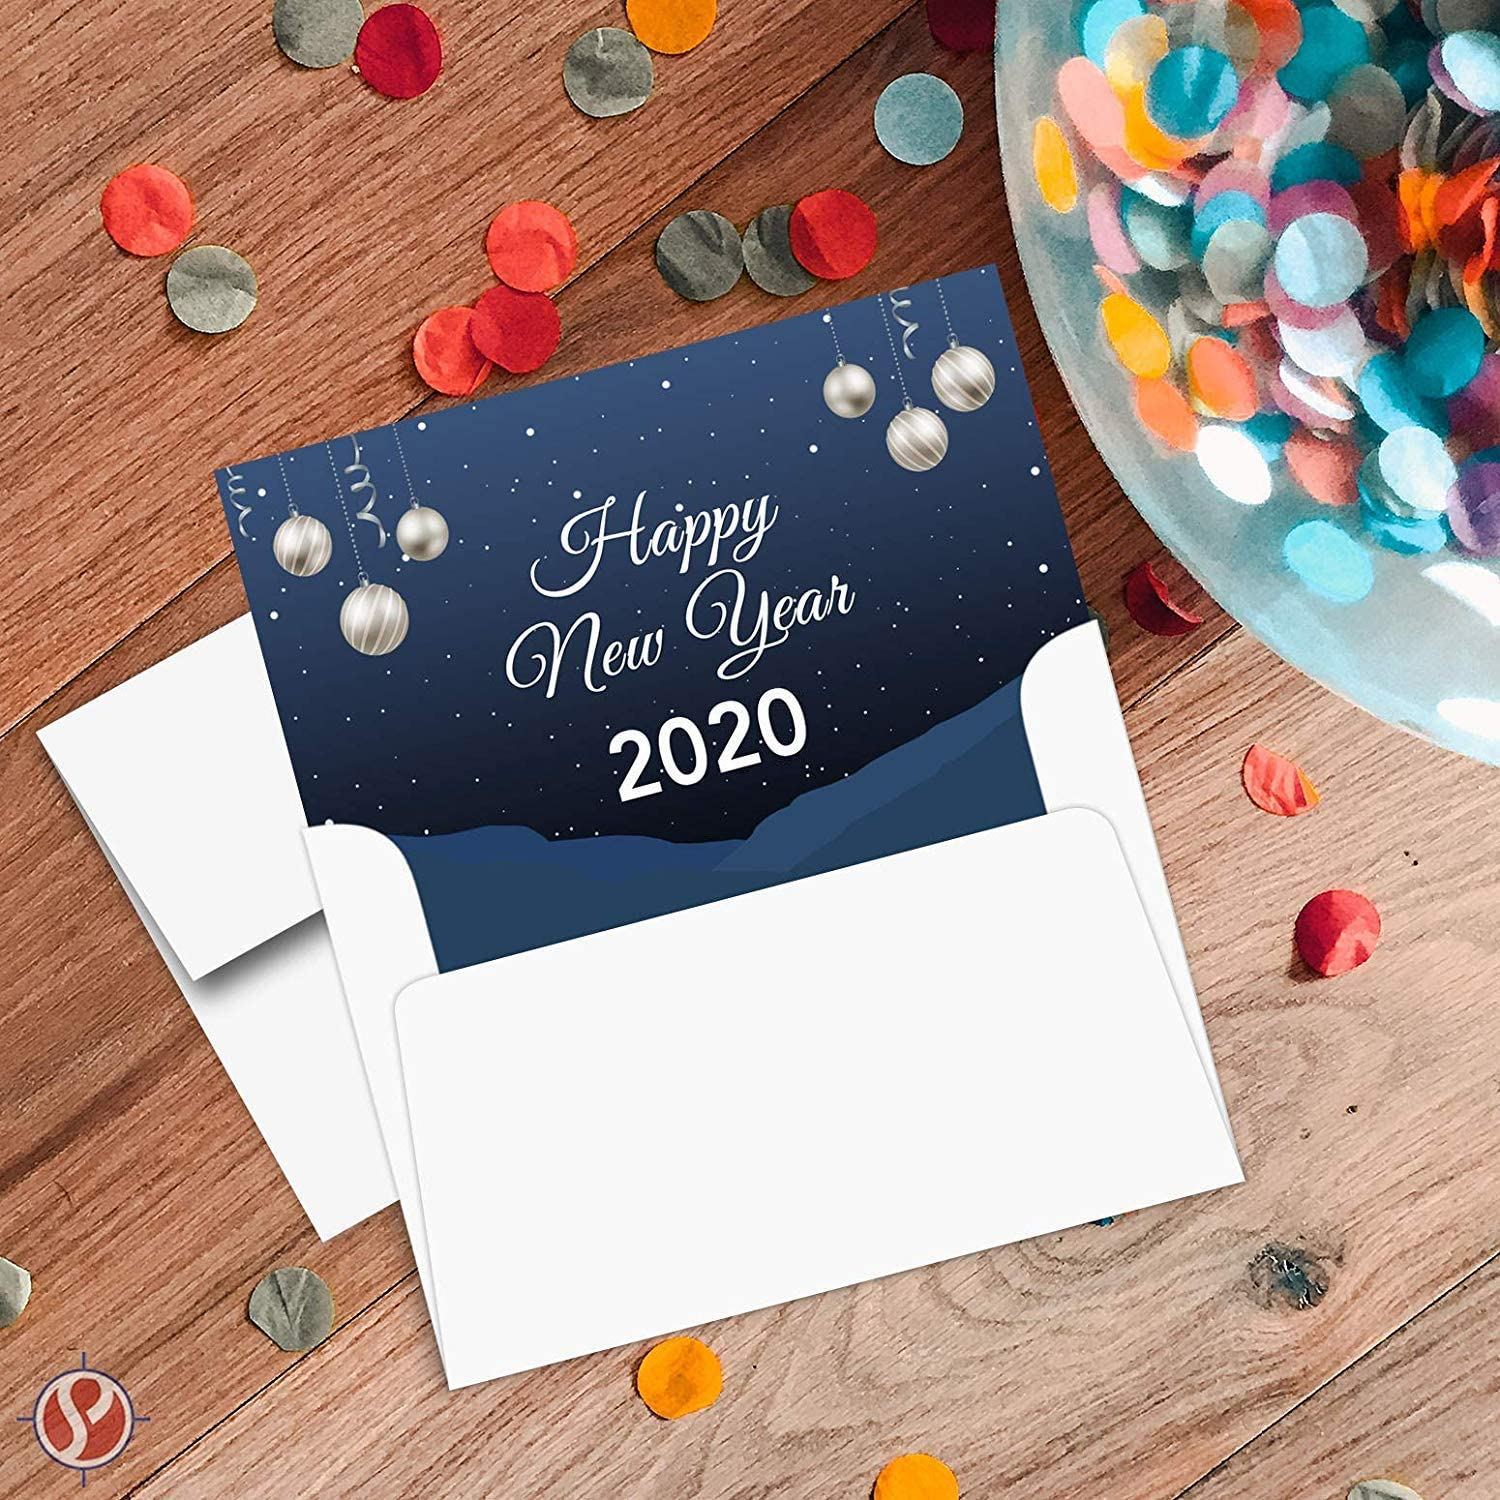 25 Cards and 25 Envelopes per Pack 4 1//2 x 6 Inches When Folded for Christmas and New Yrs Gifts and Presents 2020 Happy New Year Blue Holiday Greetings Fold Over Cards /& Envelopes